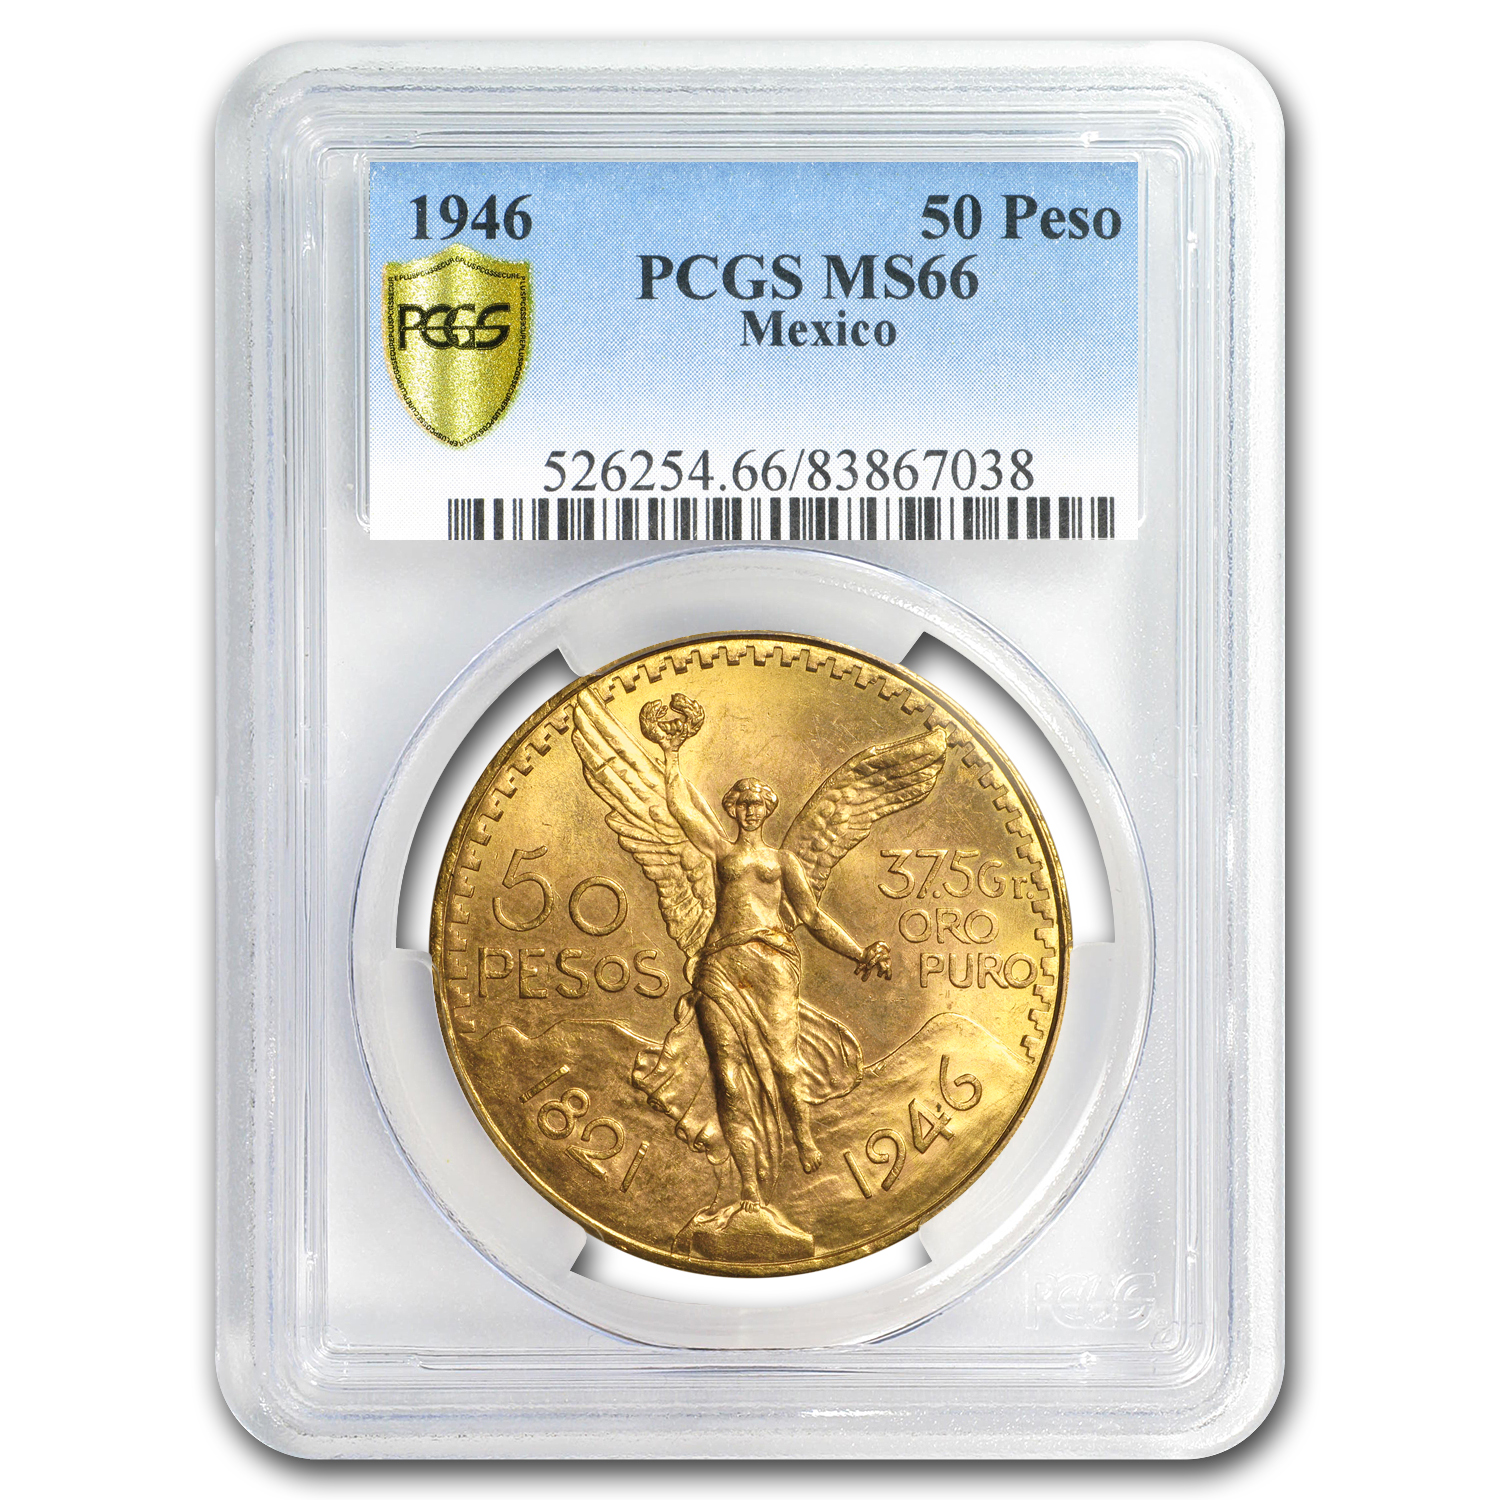 Mexico 1946 50 Pesos Gold MS-66 PCGS